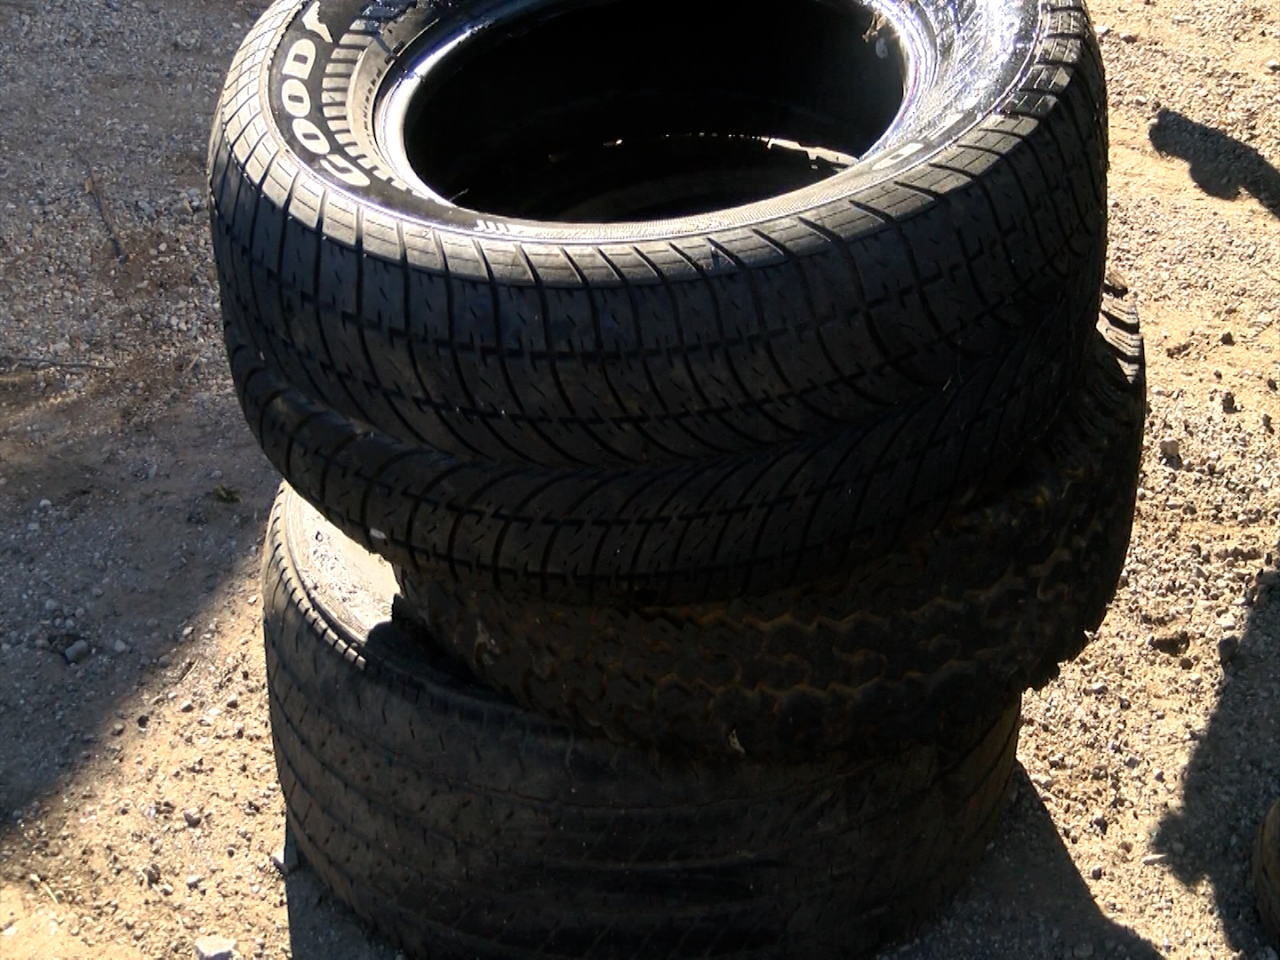 Peoria City Council discuss licenses for tire businesses, hoping to stop illegal dumping